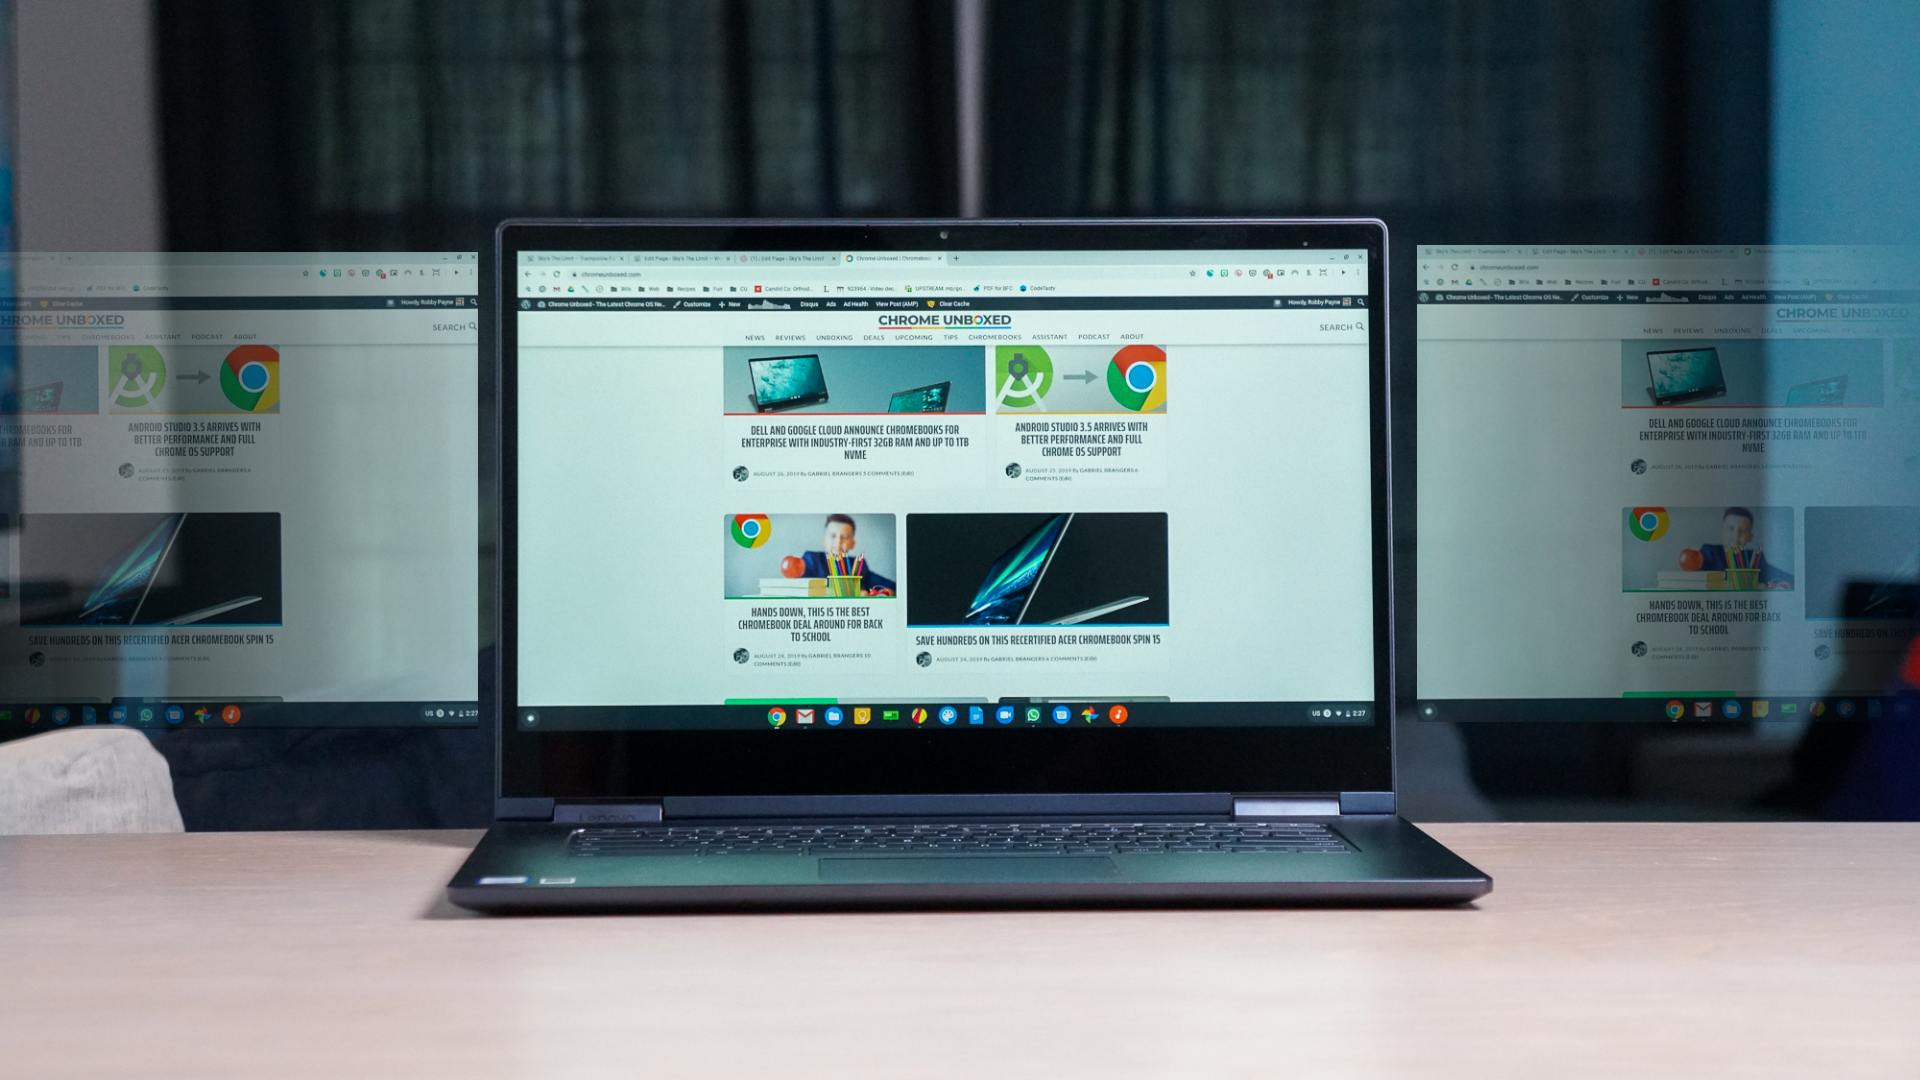 This new feature makes Chromebook Virtual Desks so much more efficient